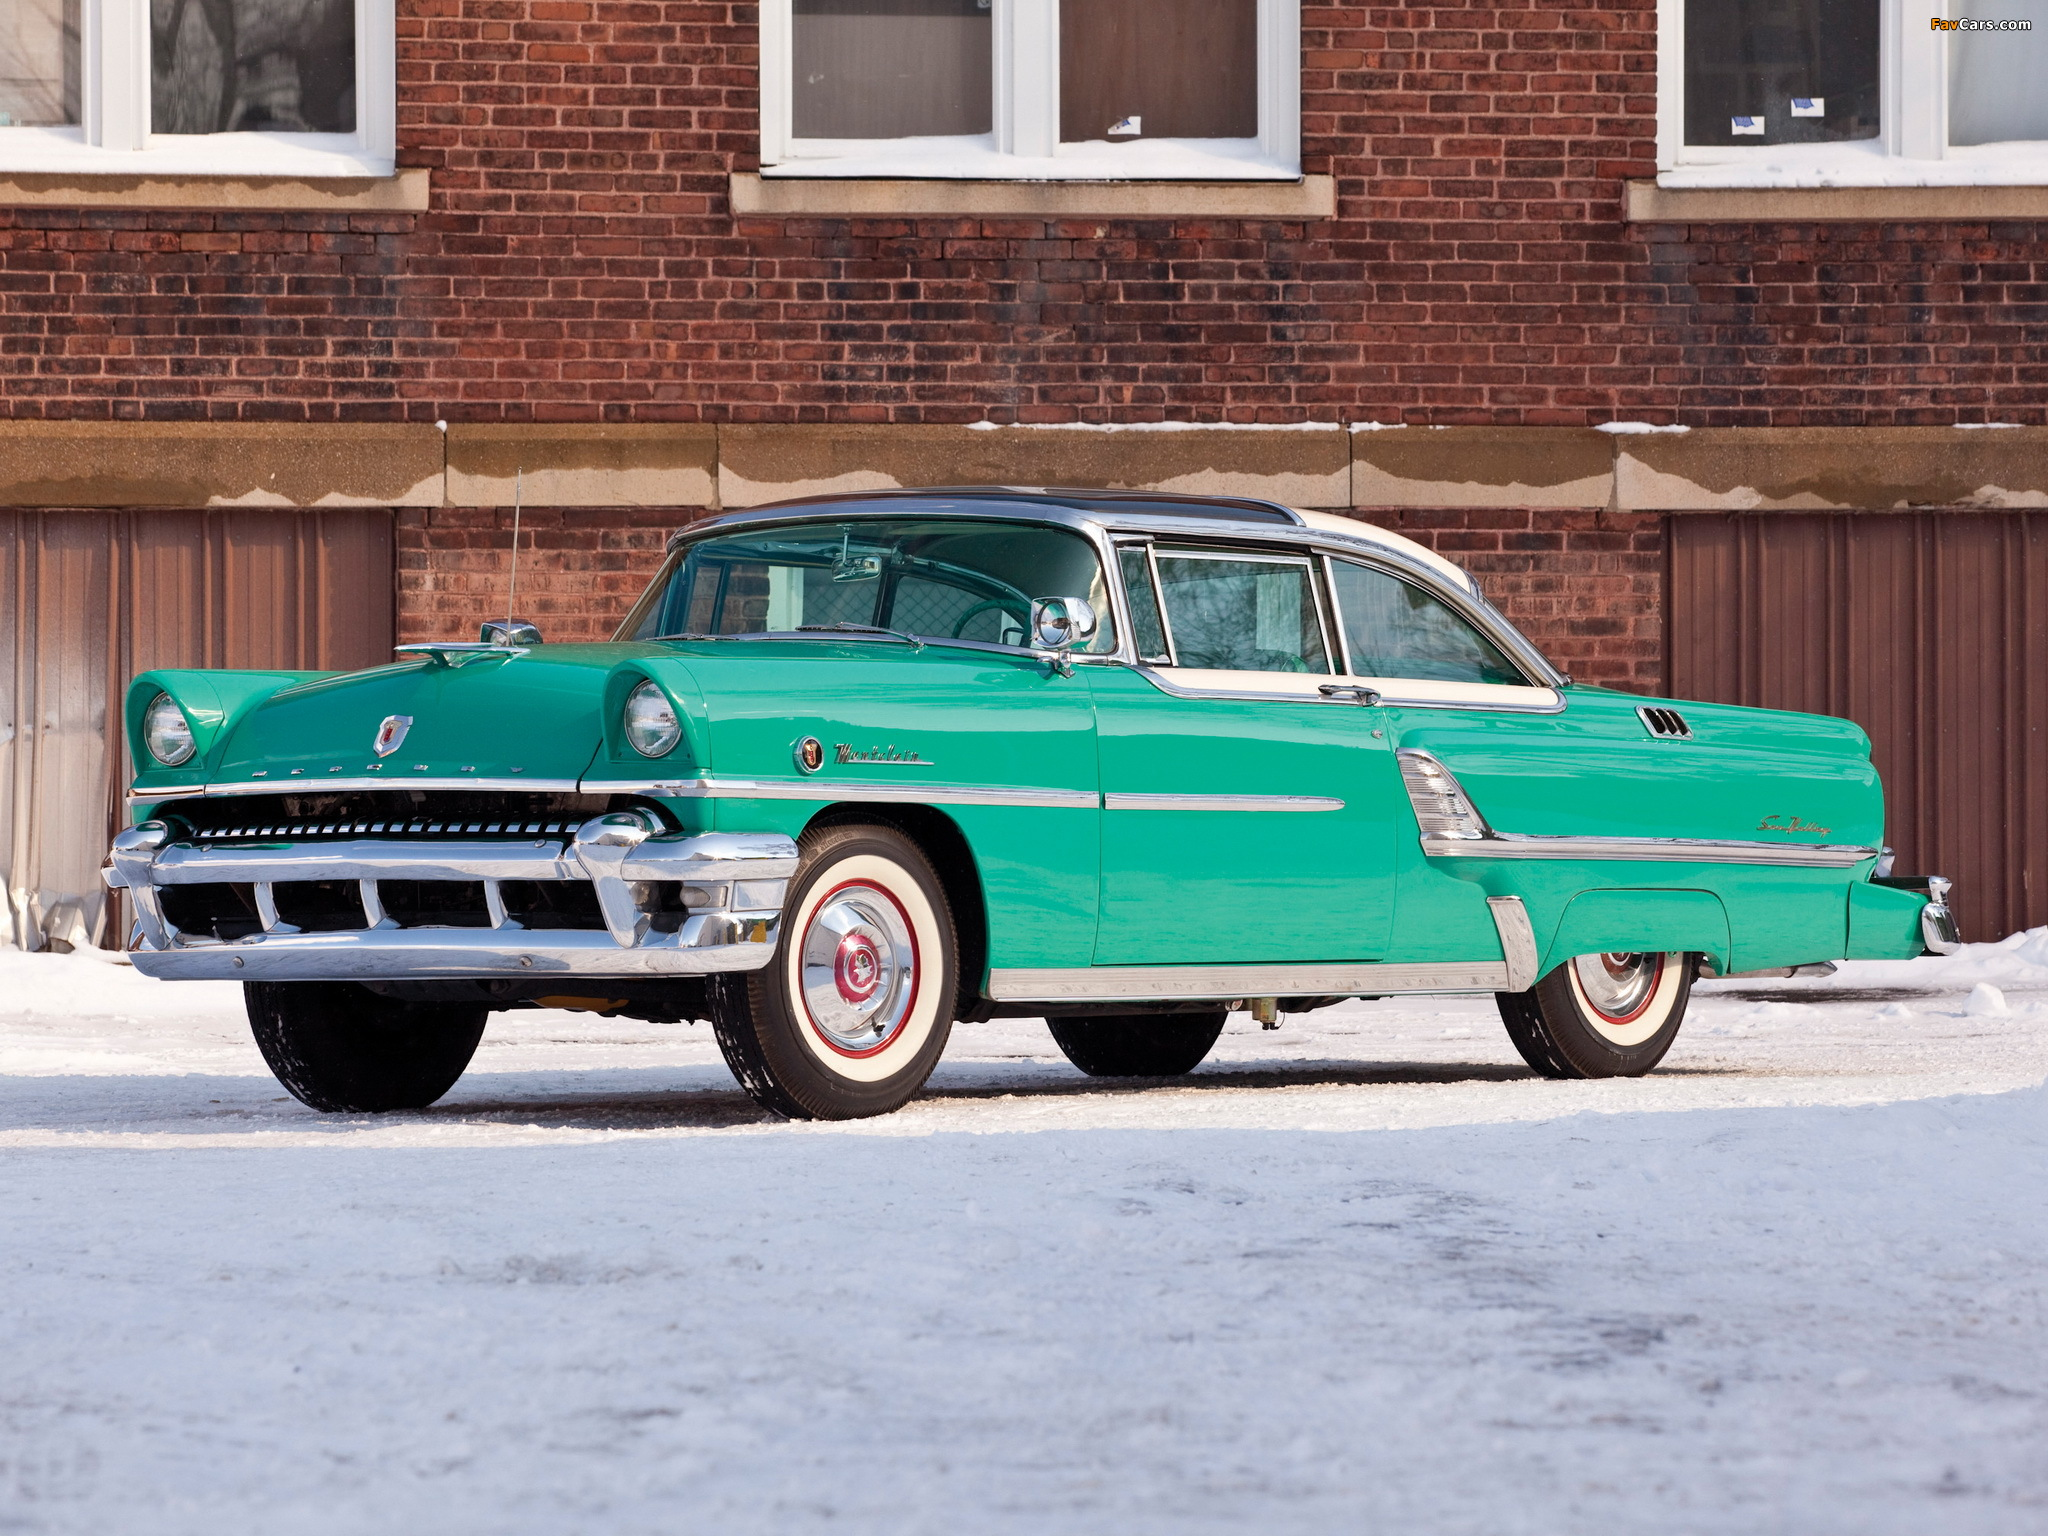 1955 Mercury Montclair #2